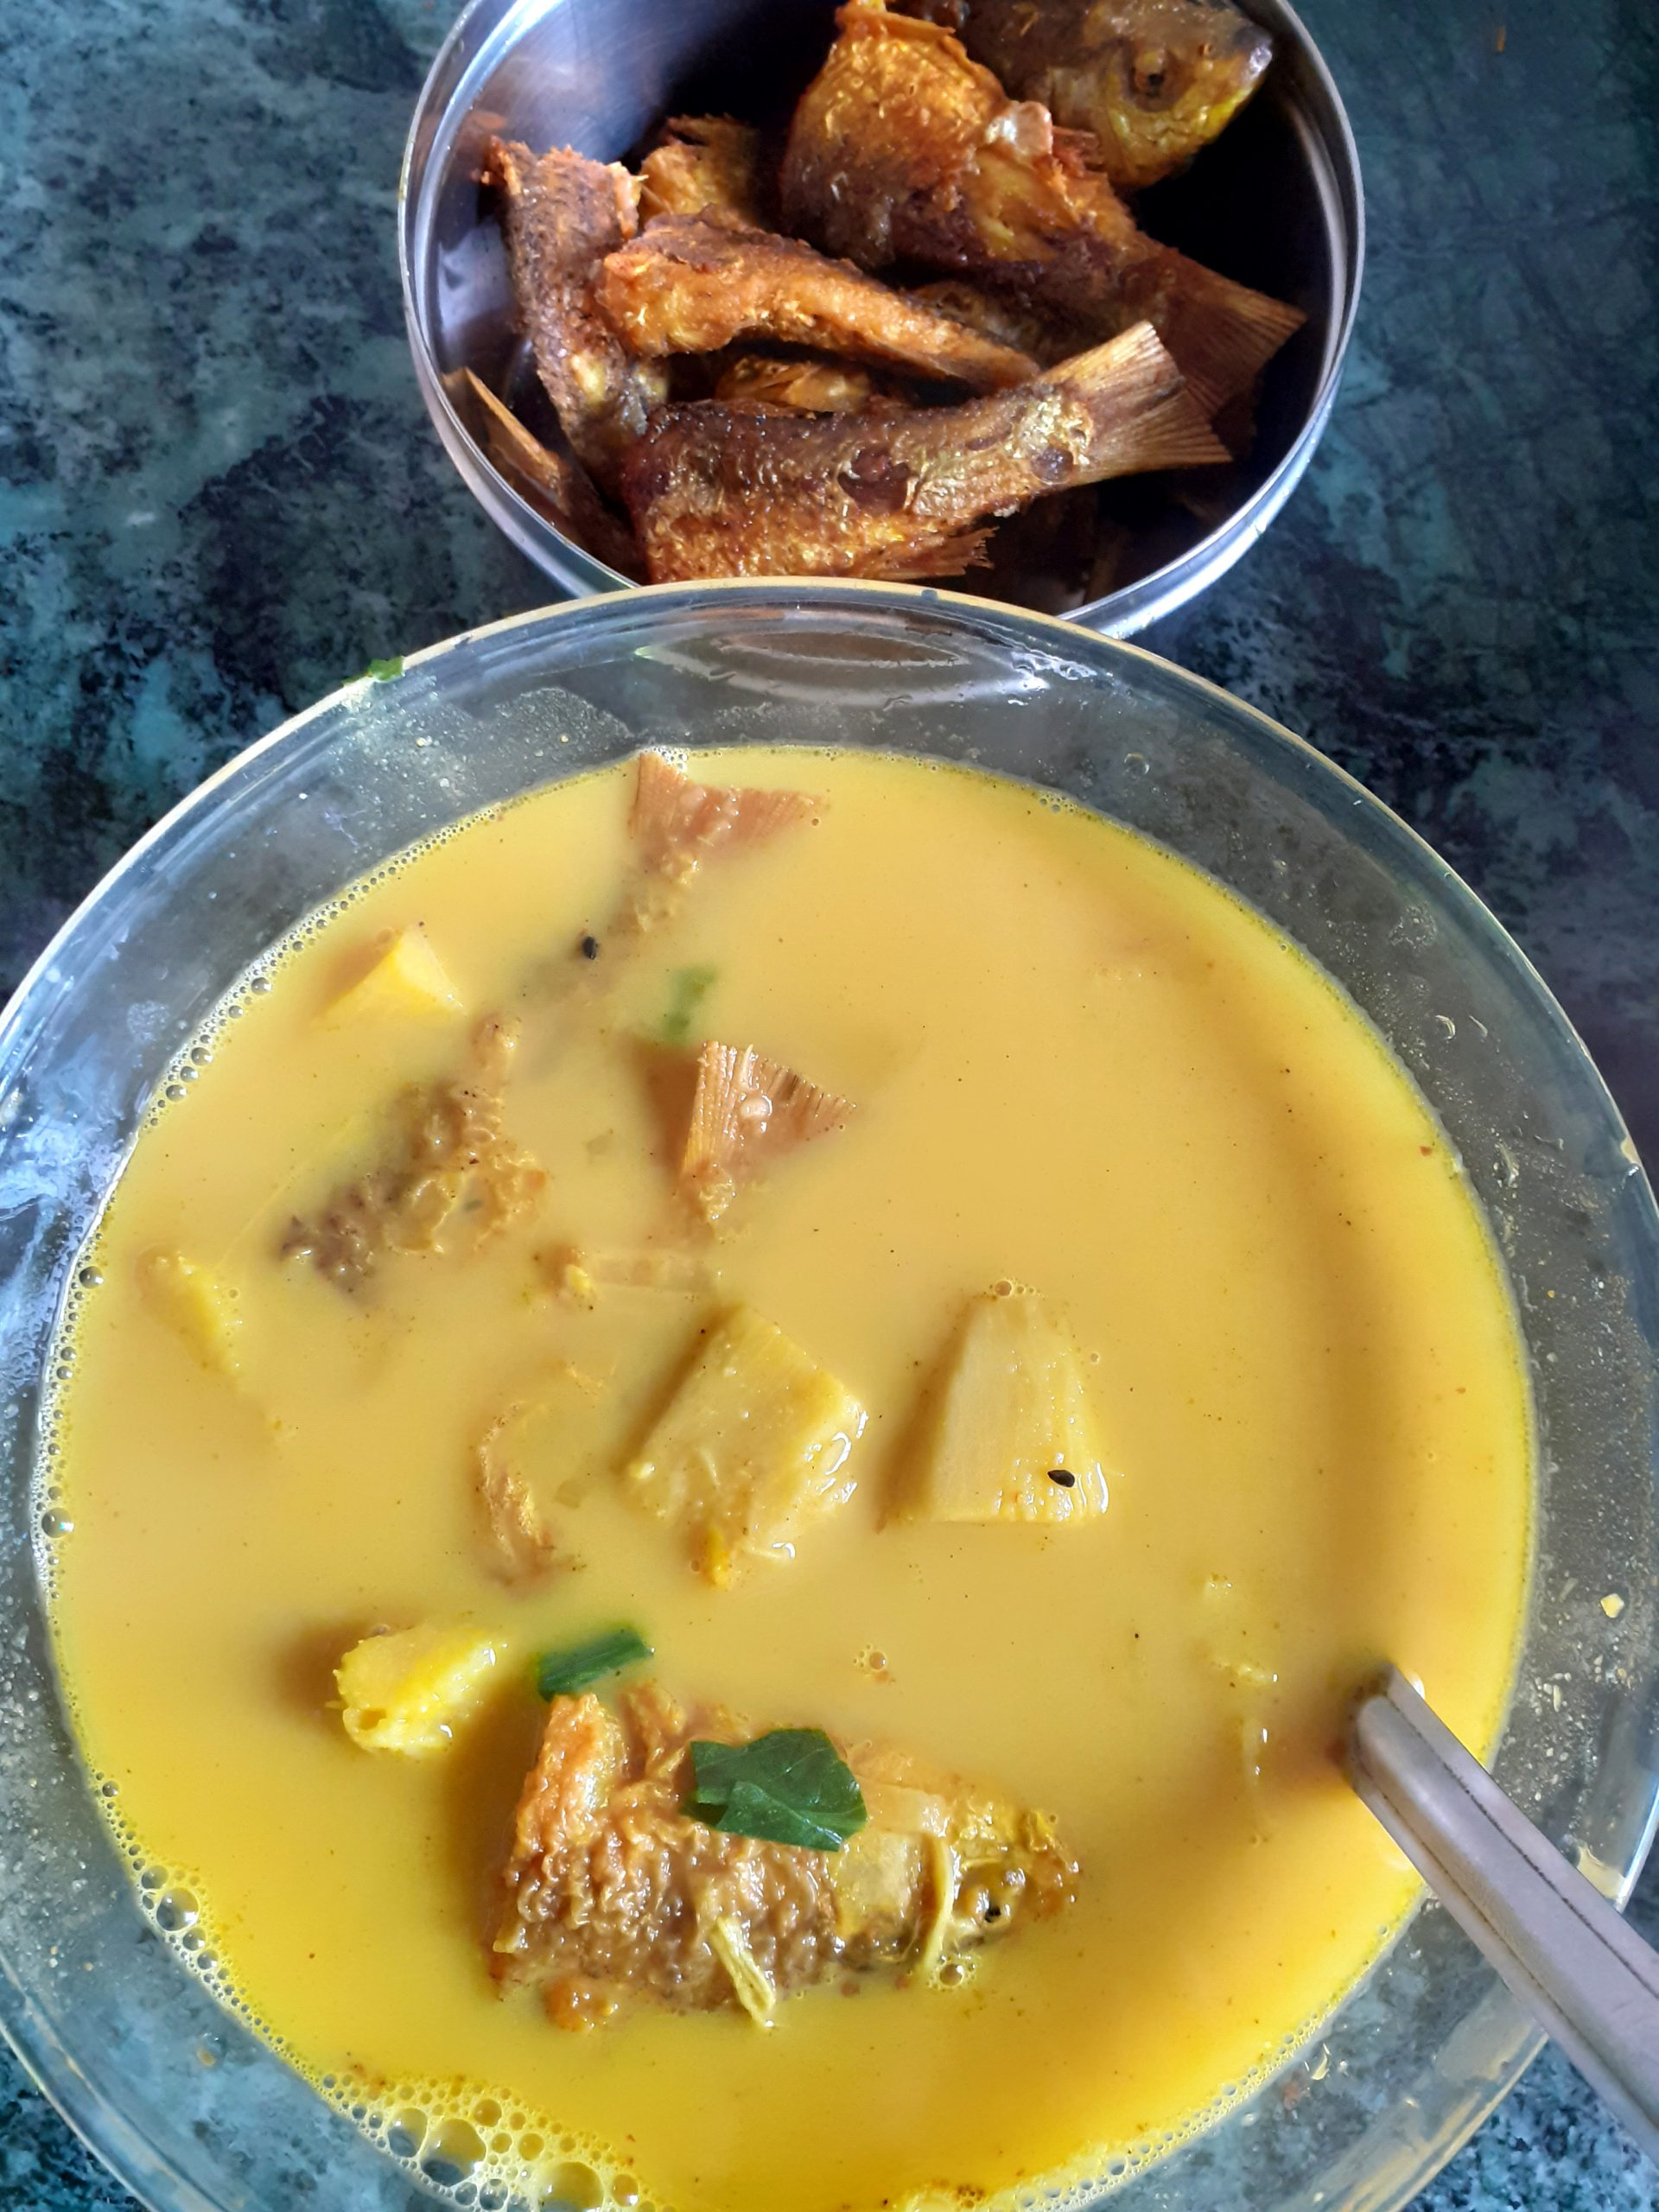 Yellow Curry and a Fried Fish